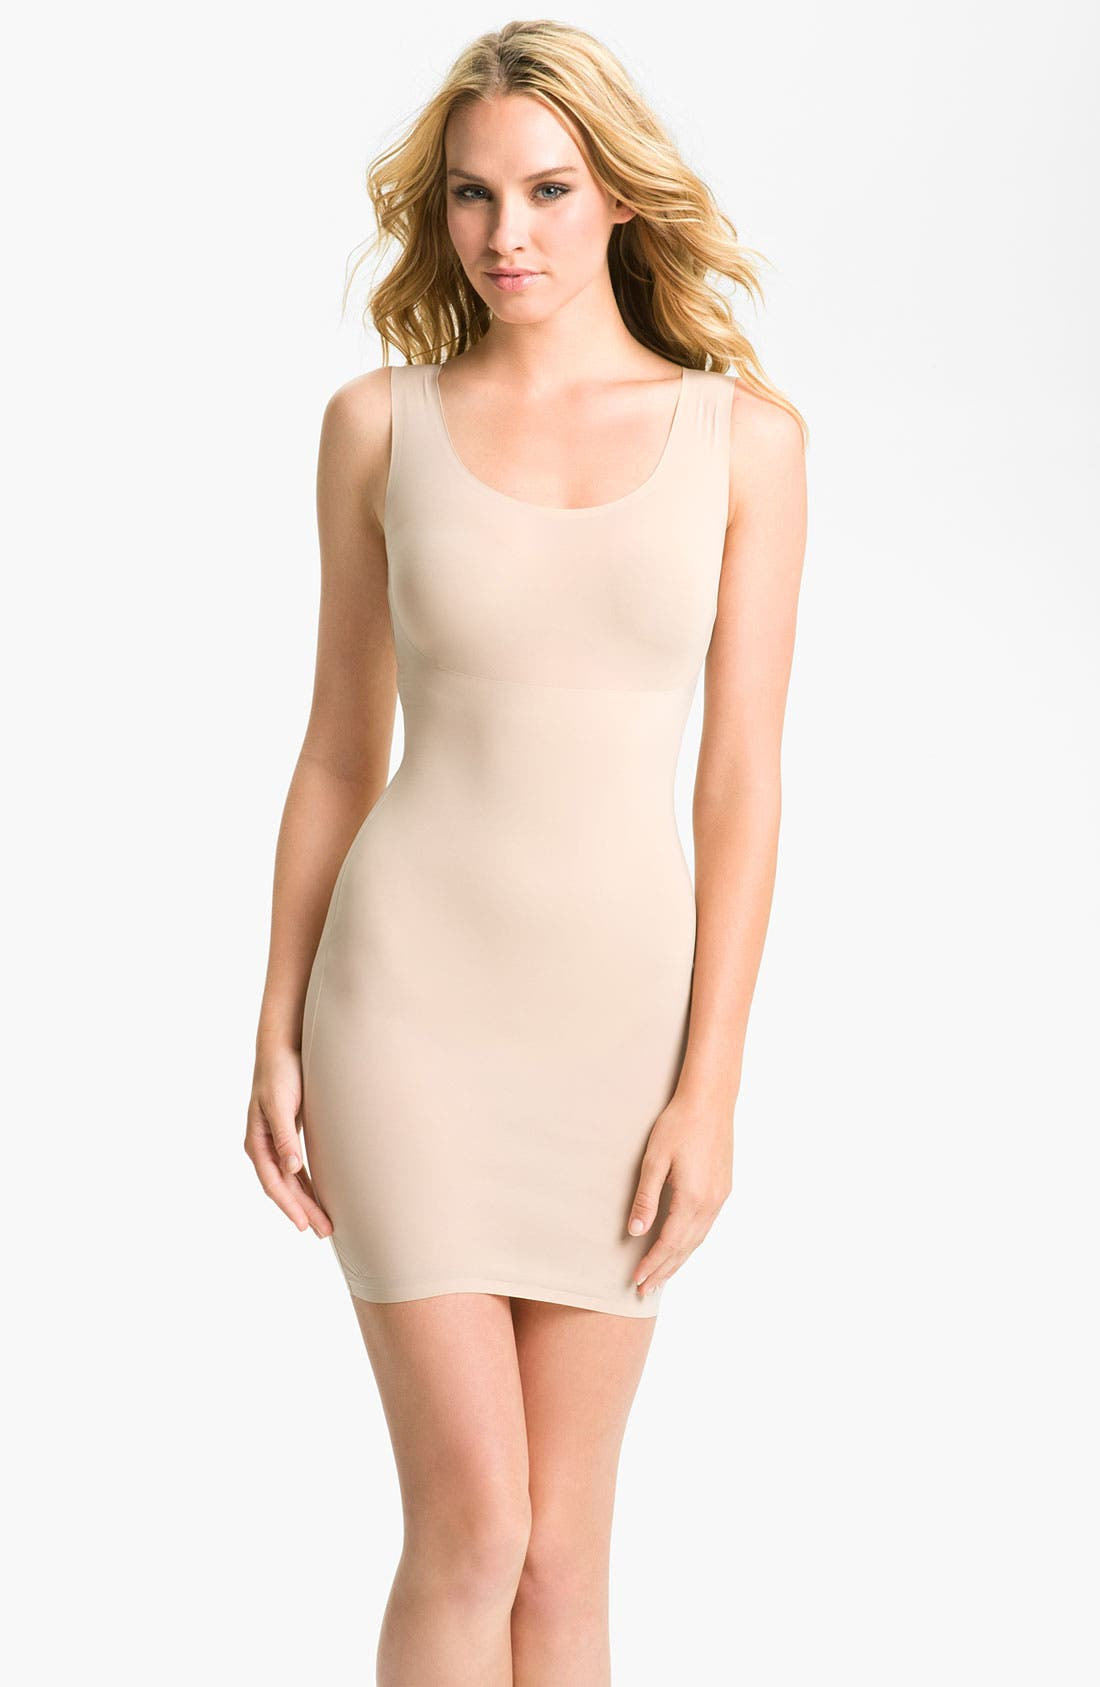 Alternate Image 1 Selected - SPANX® 'Trust Your Thinstincts' Slip Shaper